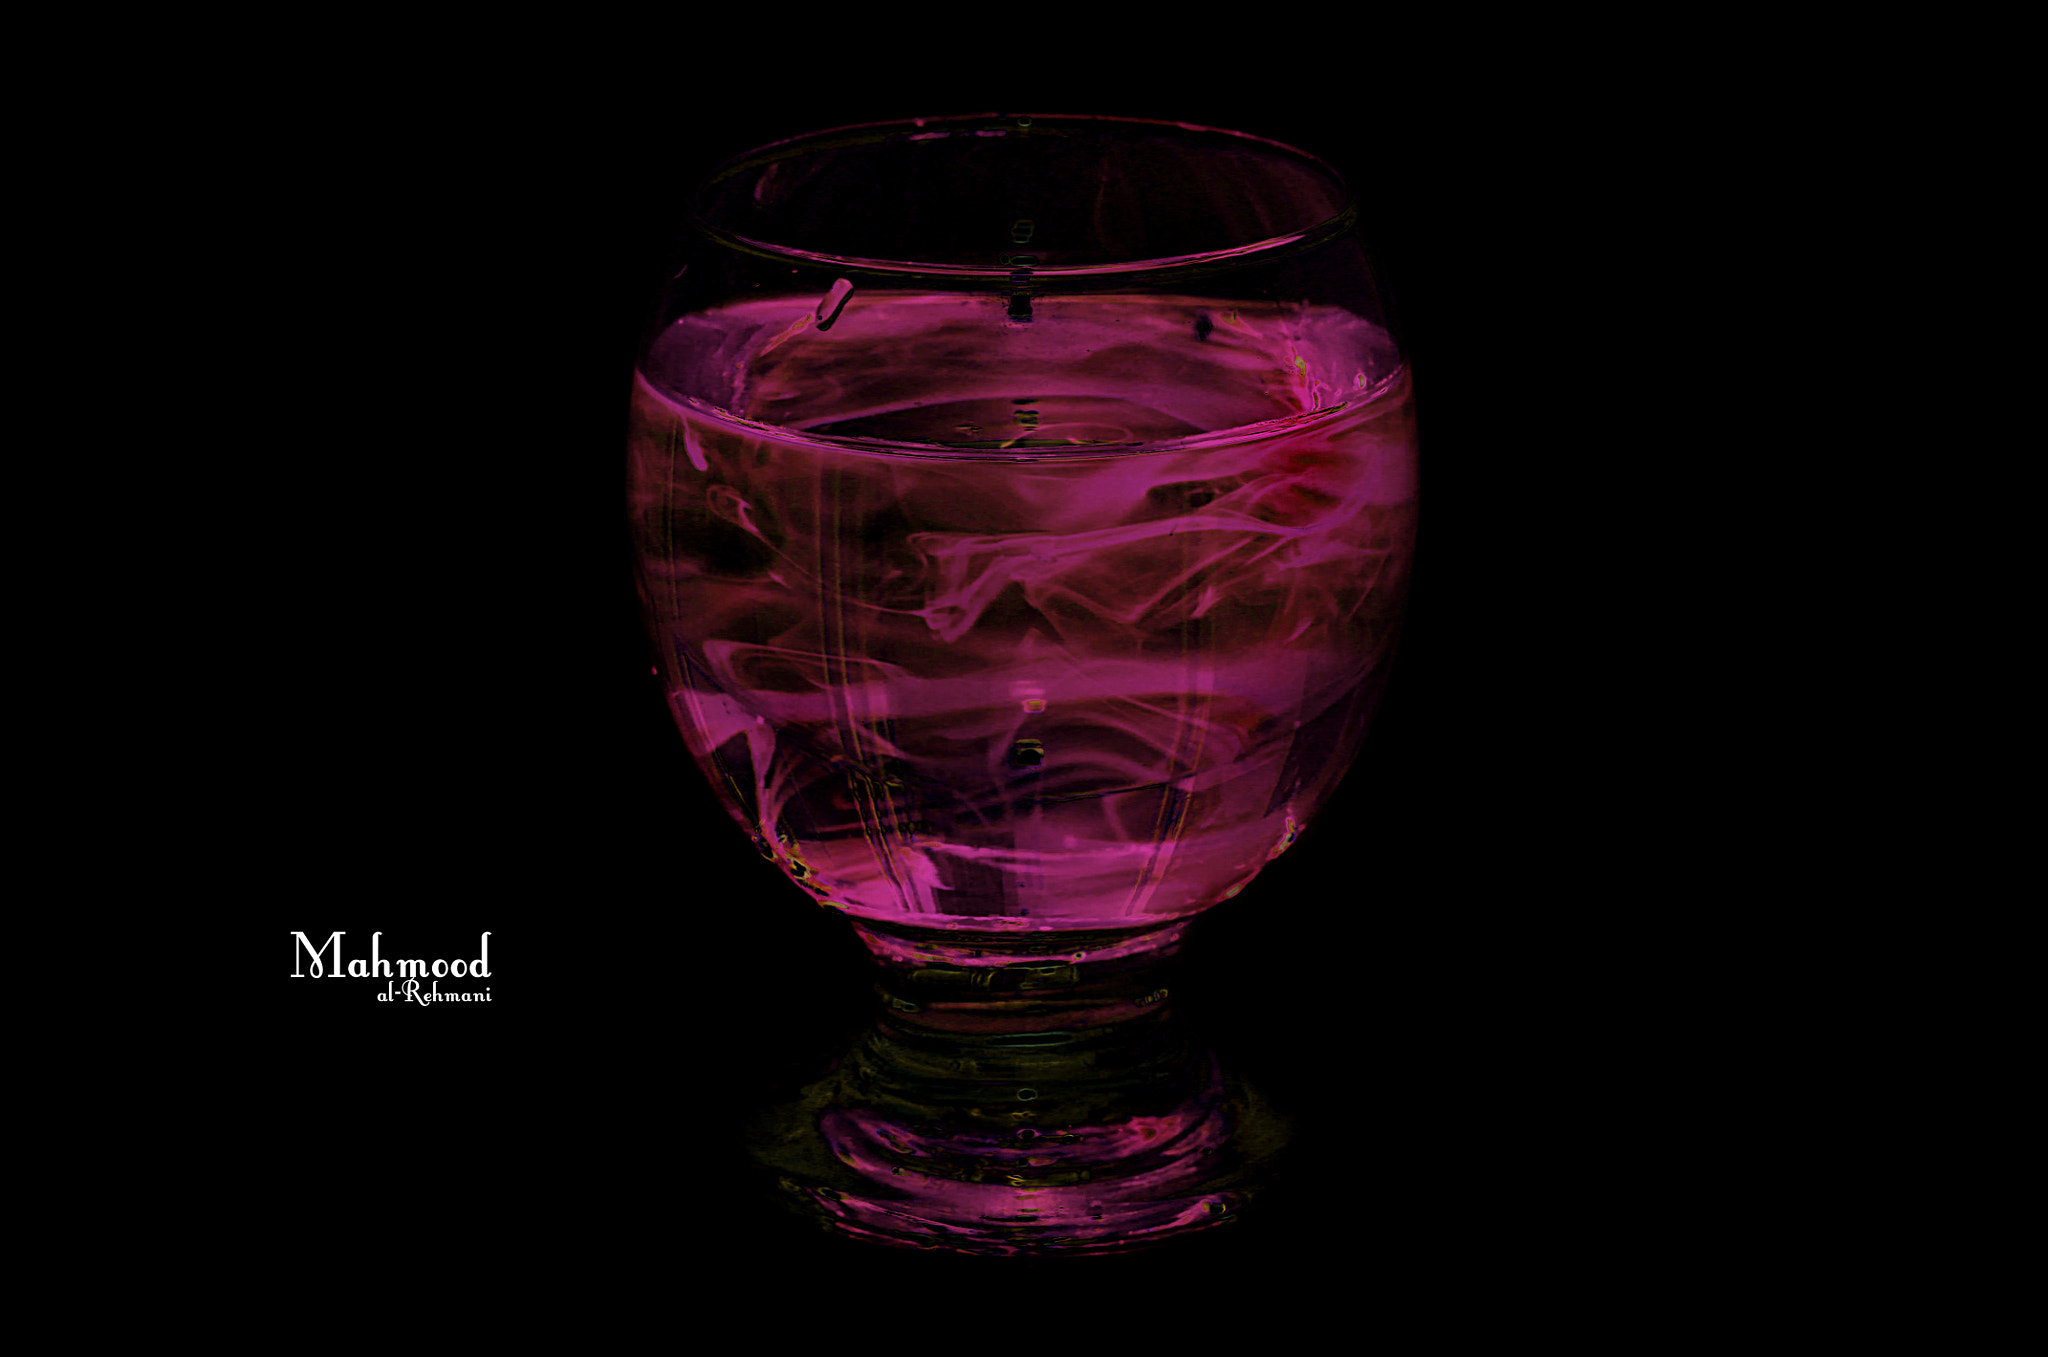 Photograph glowing glass by Mahmood Al-Rehmani on 500px